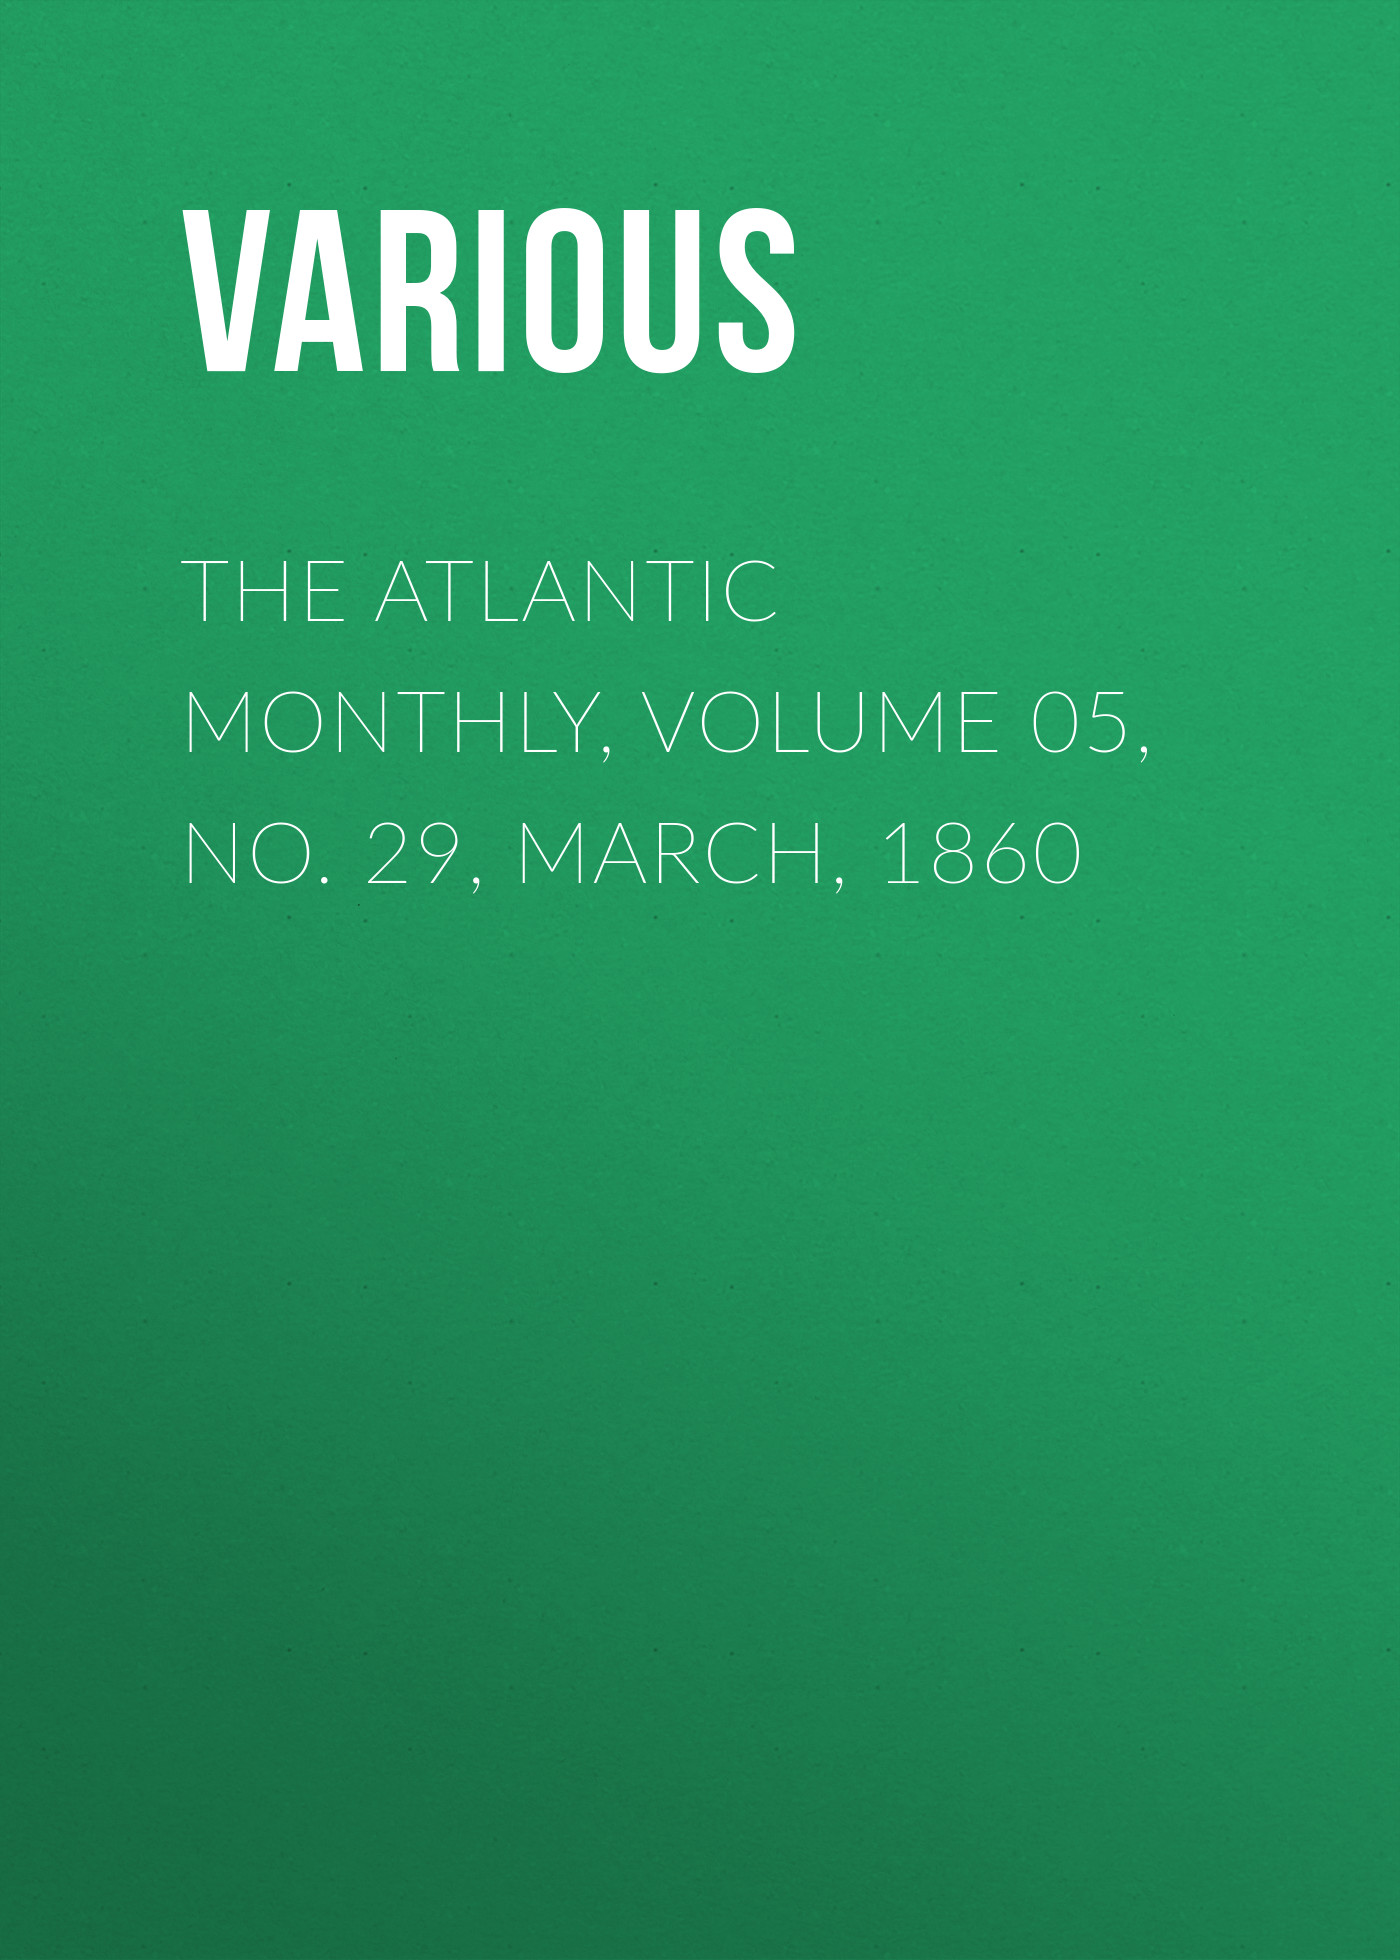 Various The Atlantic Monthly, Volume 05, No. 29, March, 1860 various the bay state monthly volume 3 no 5